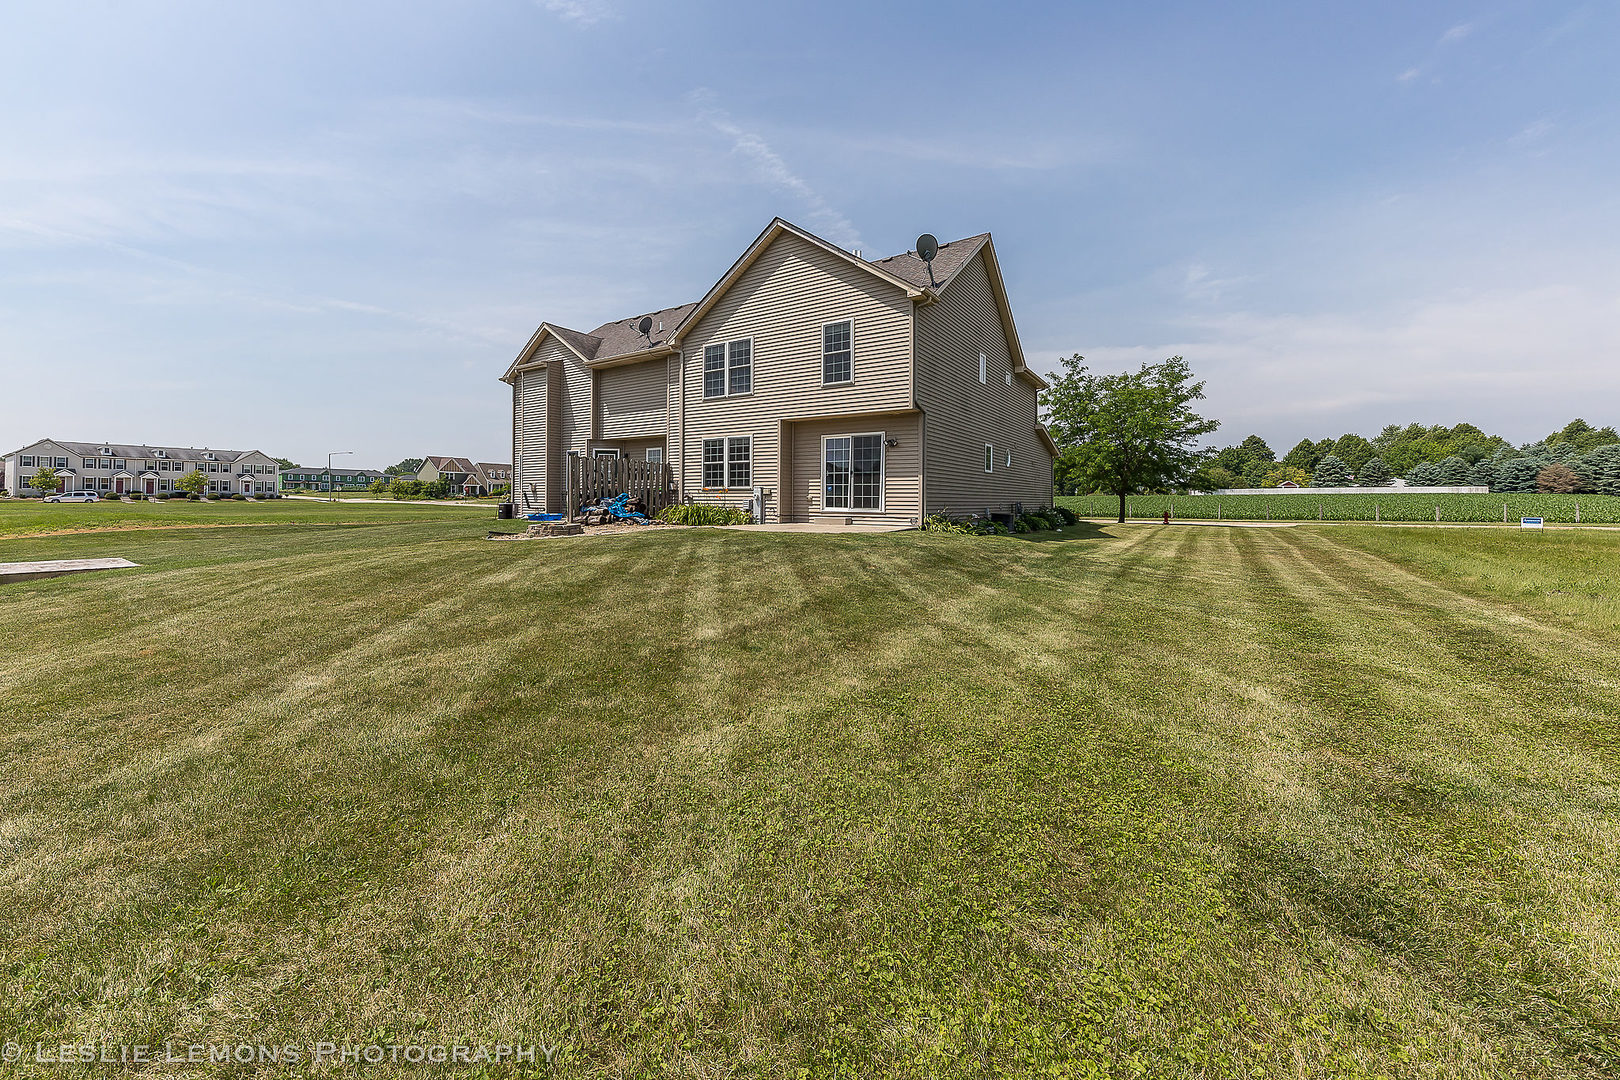 146 South Llanos 1, Cortland, Illinois, 60112